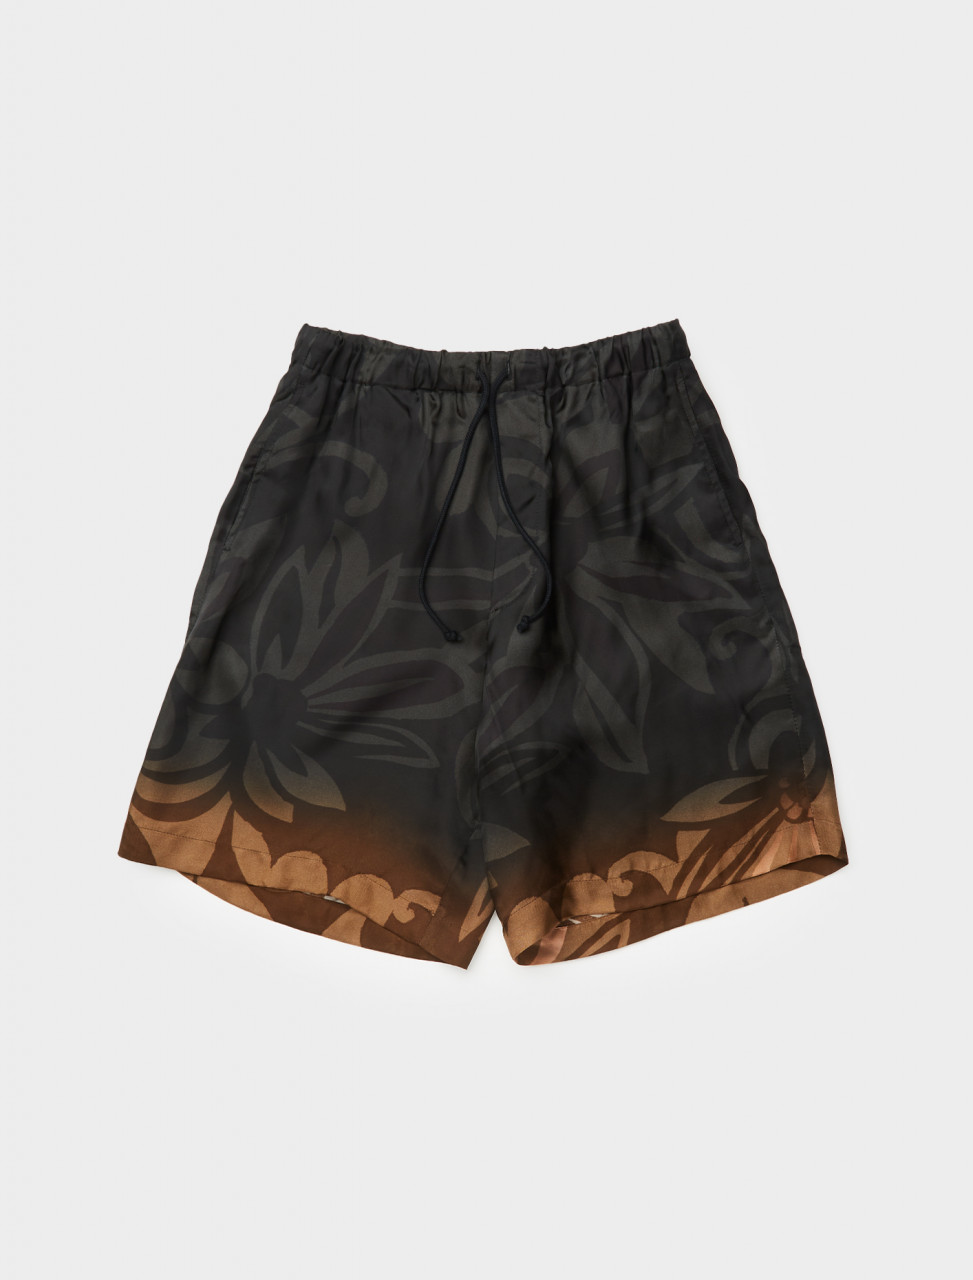 260-202-20966-1065-900 DRIES VAN NOTEN PIPER PRINTED SHORTS BLACK